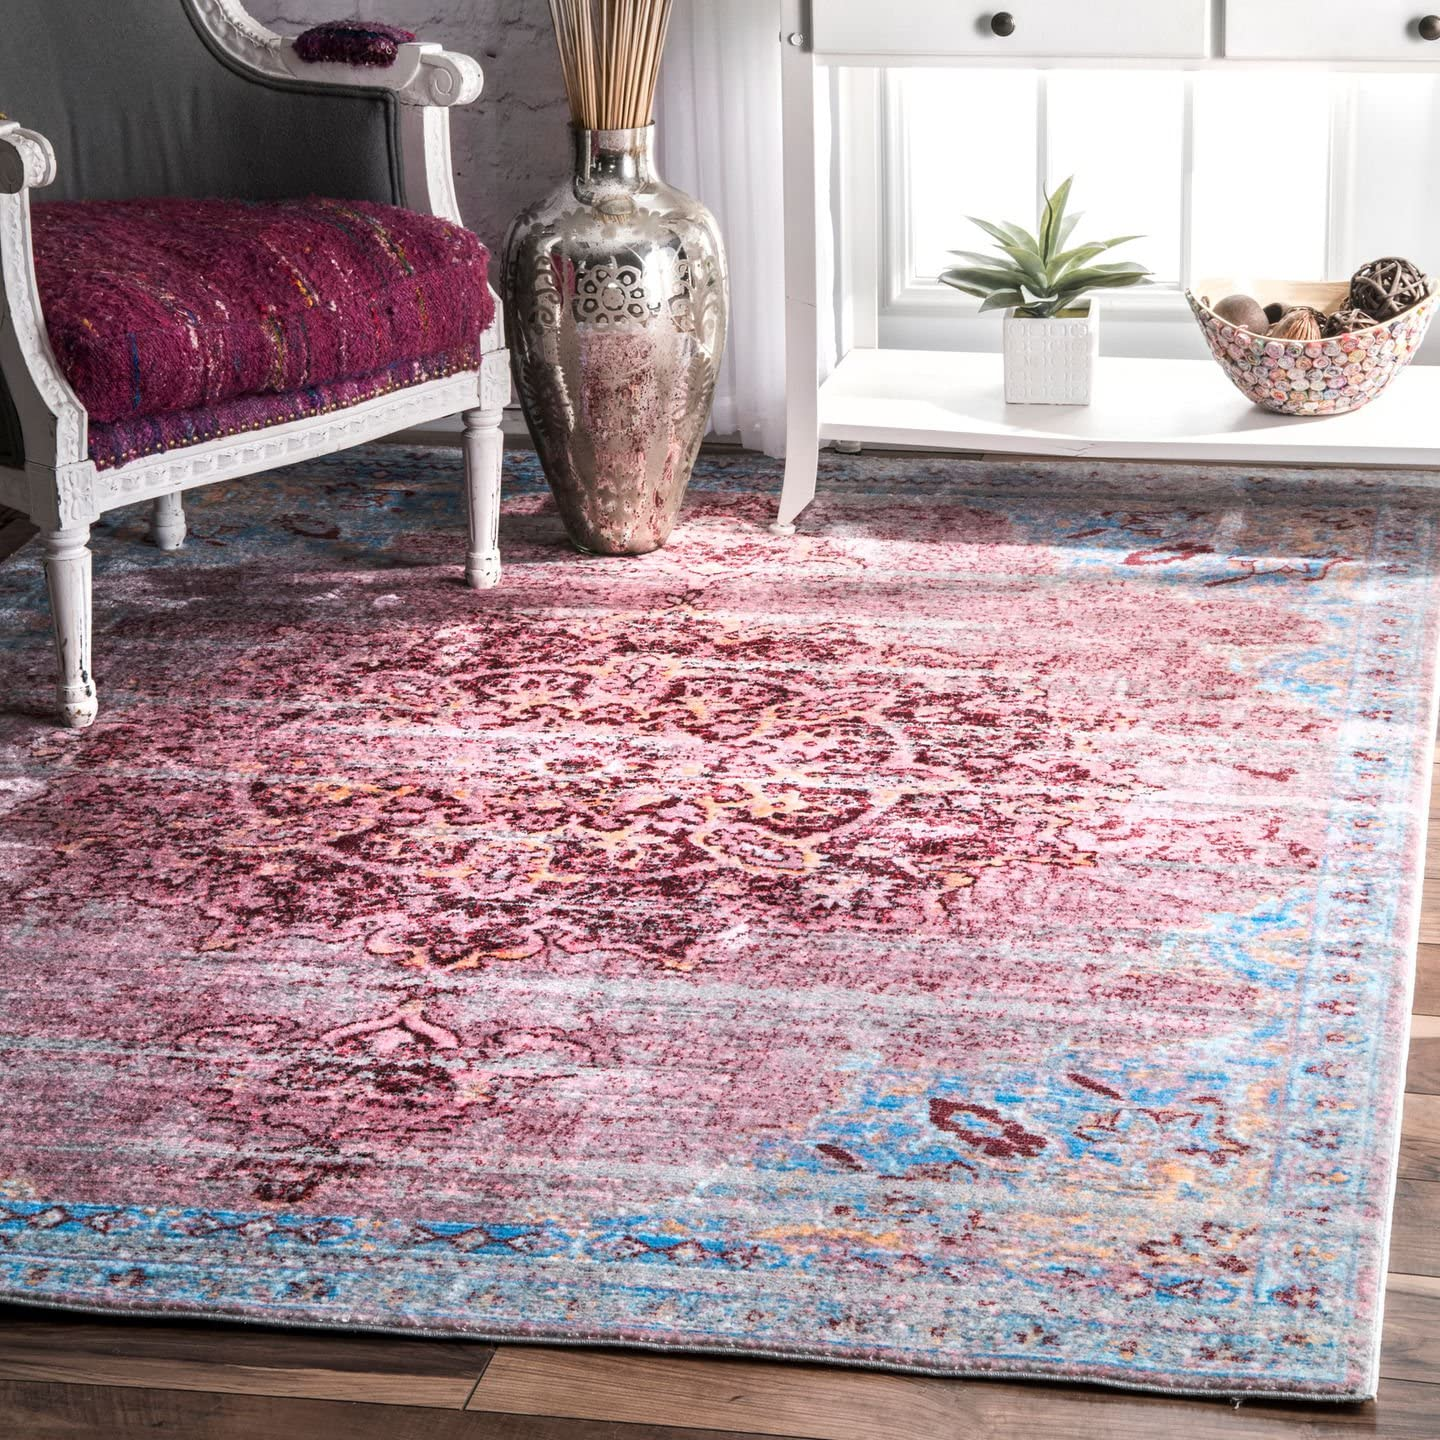 nuLOOM Cherry Pink Vintage Medallion Marin Rug, 5 3 by 7 10